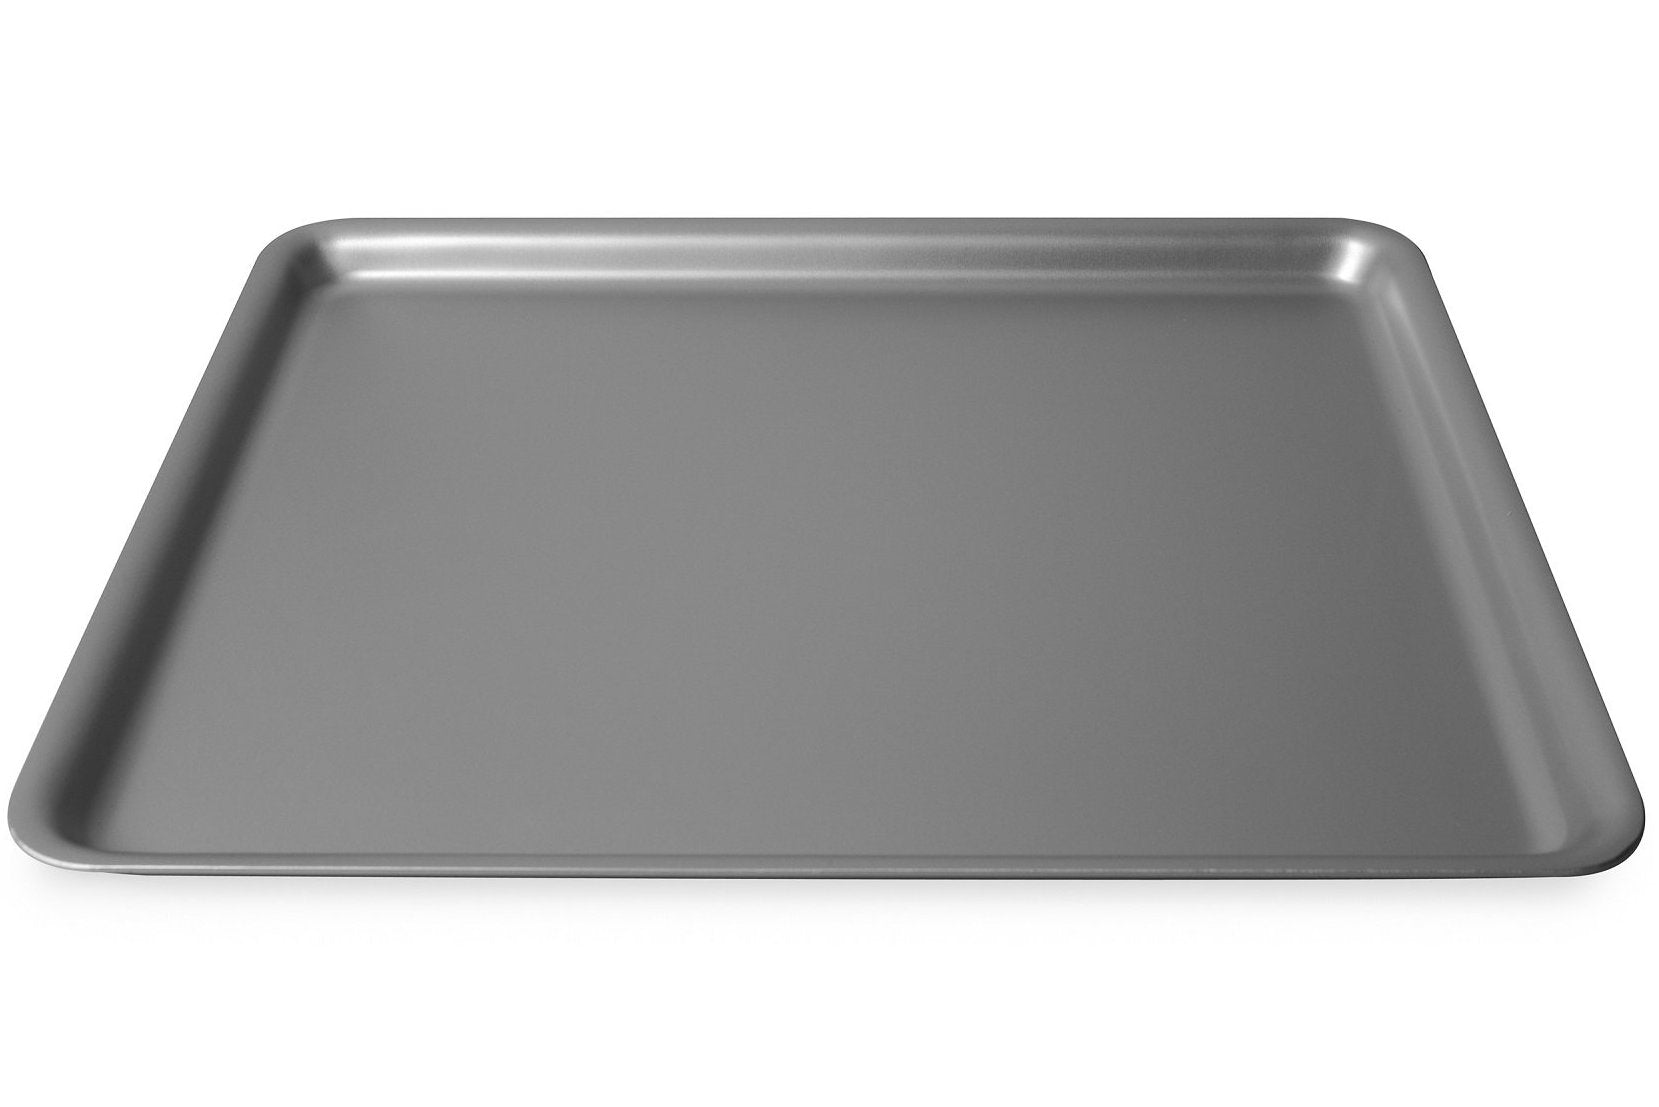 14 12 X 12 X 34 Inch Oven Roasting Tray